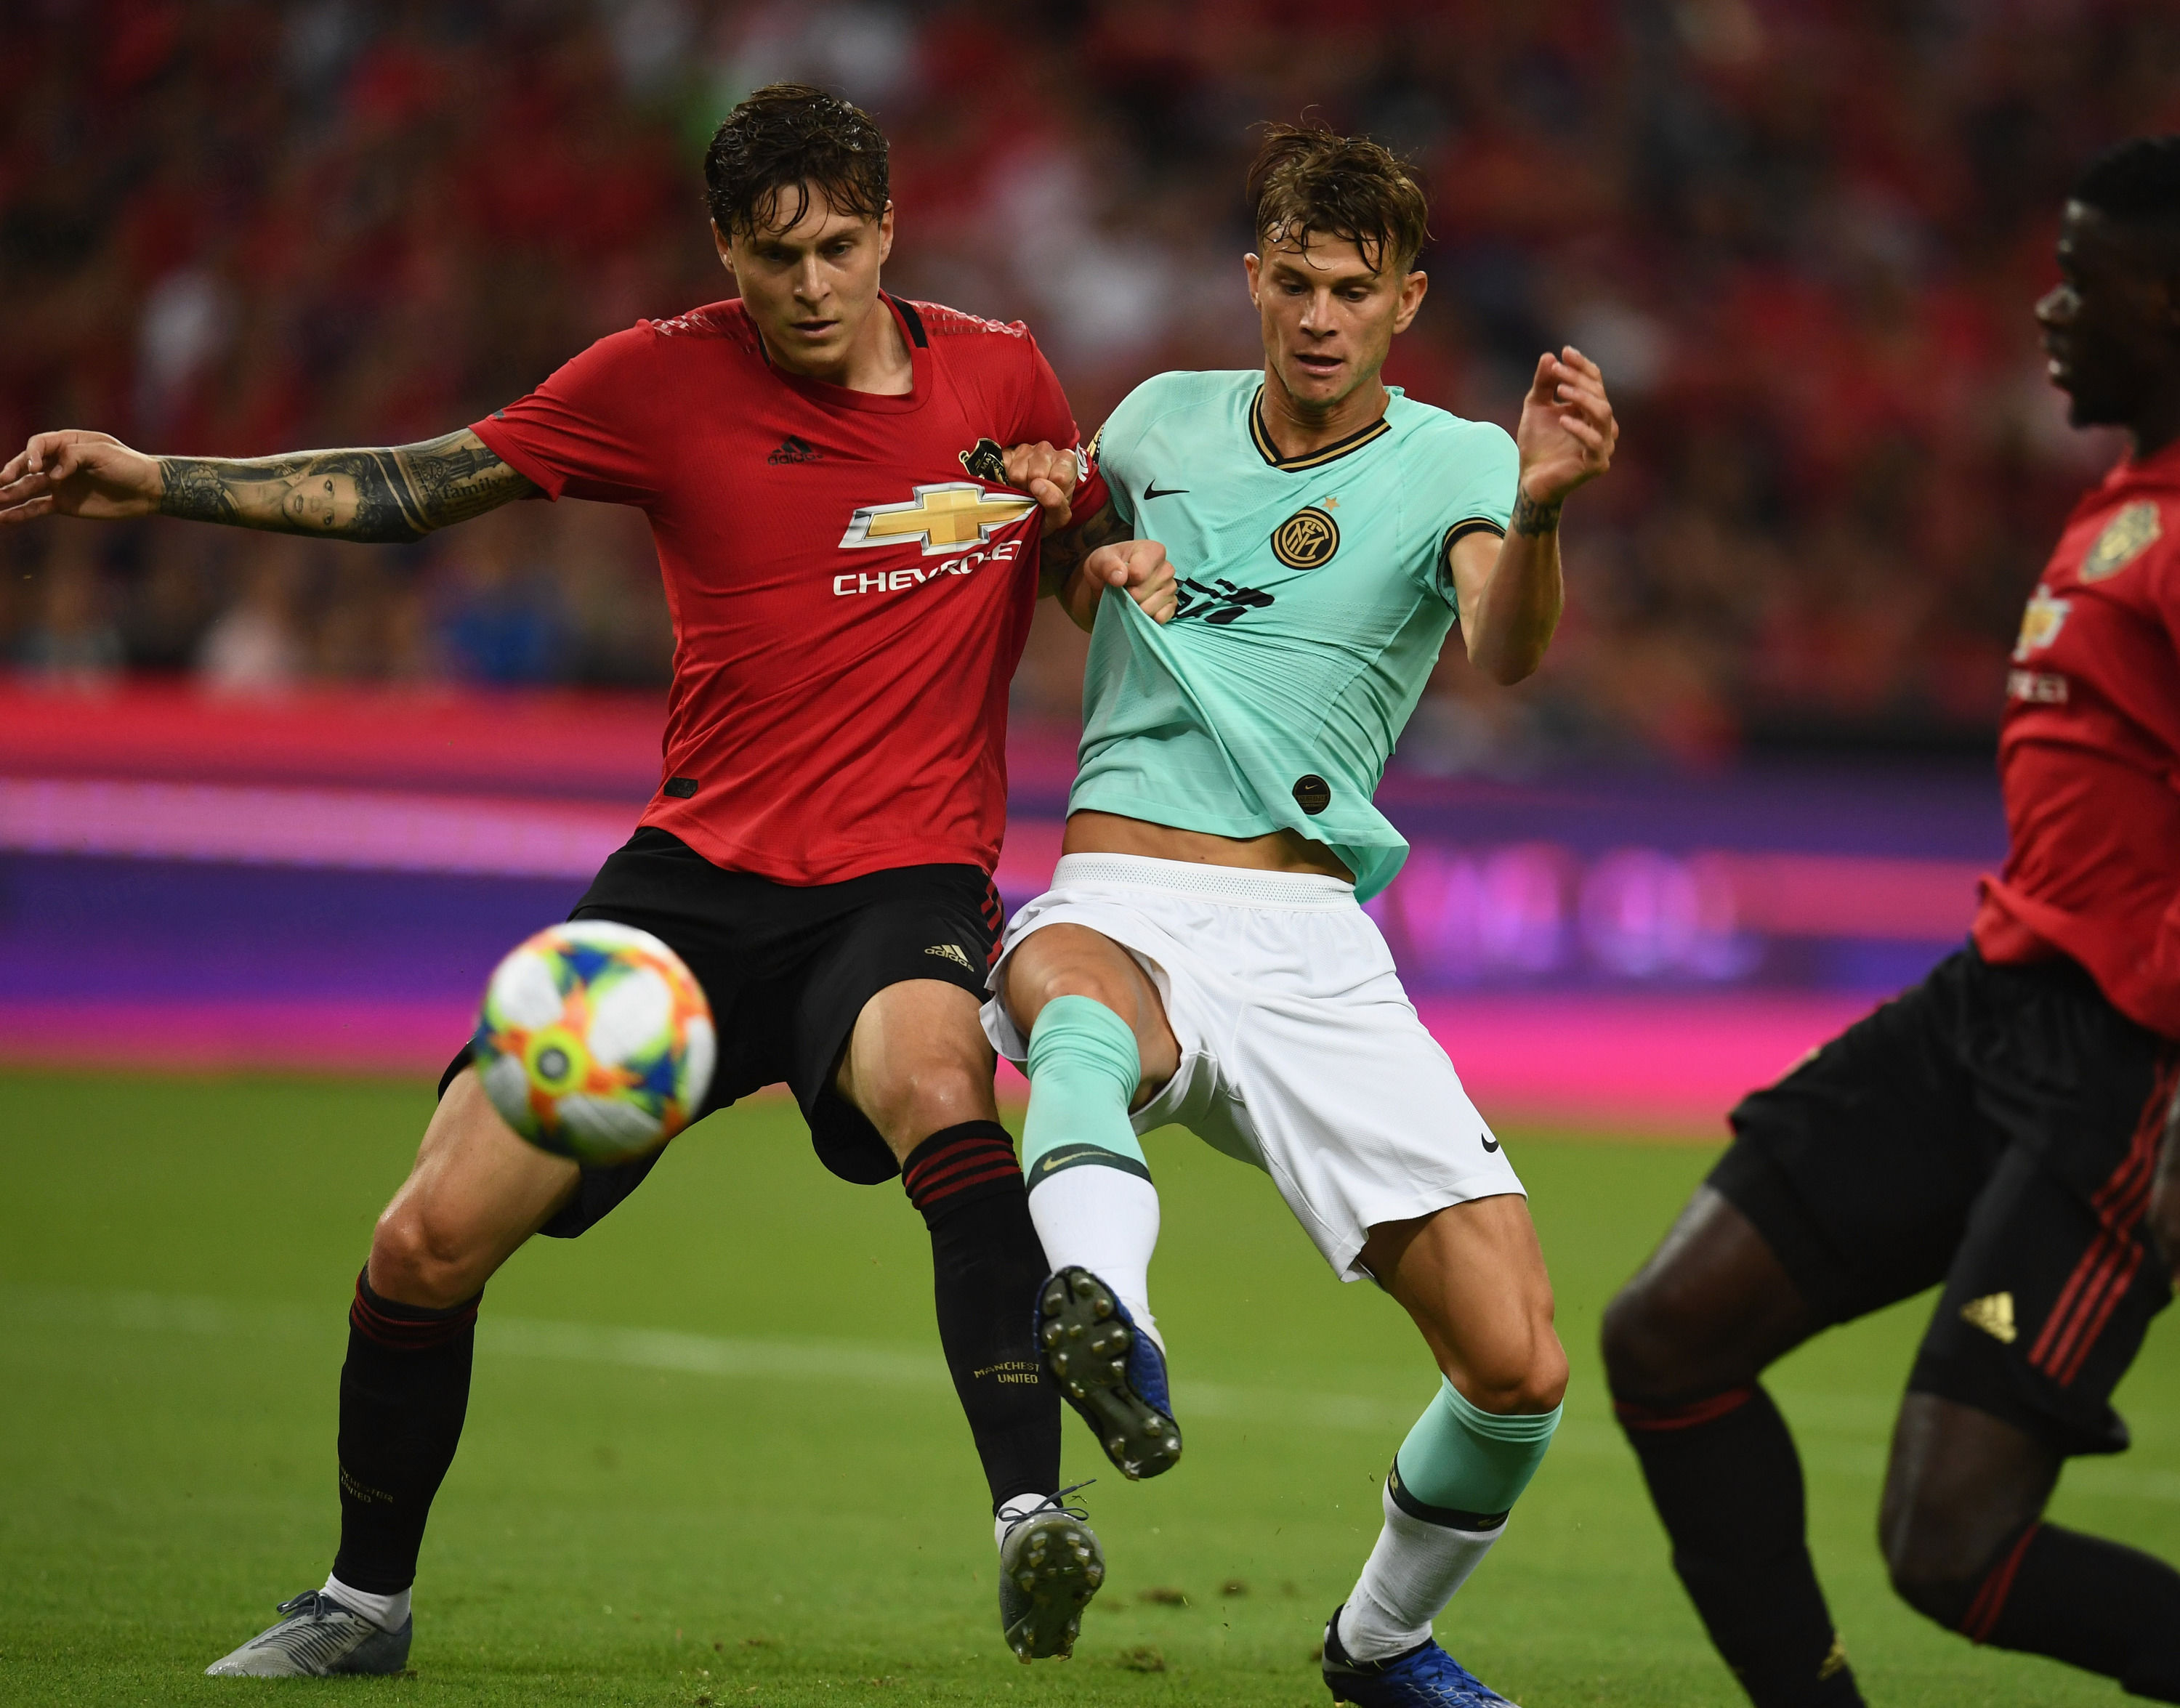 ICC 2019, all the photos from Manchester United vs. Inter